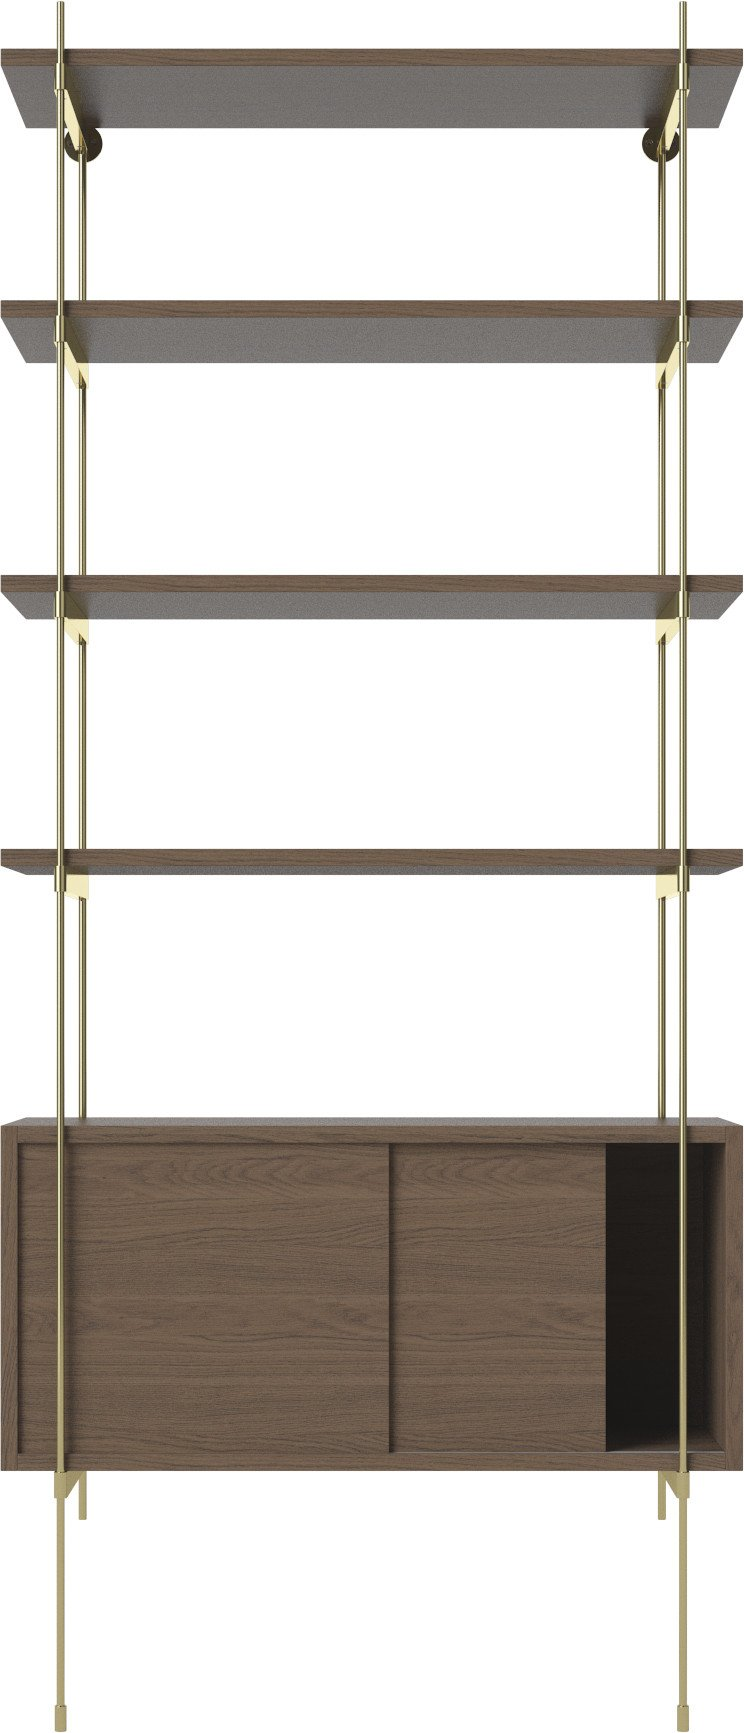 ROD Shelf Combination 05 Brass Plated Steel and Smoked Oak by Kaschkasch for Bolia - 511715 - photo